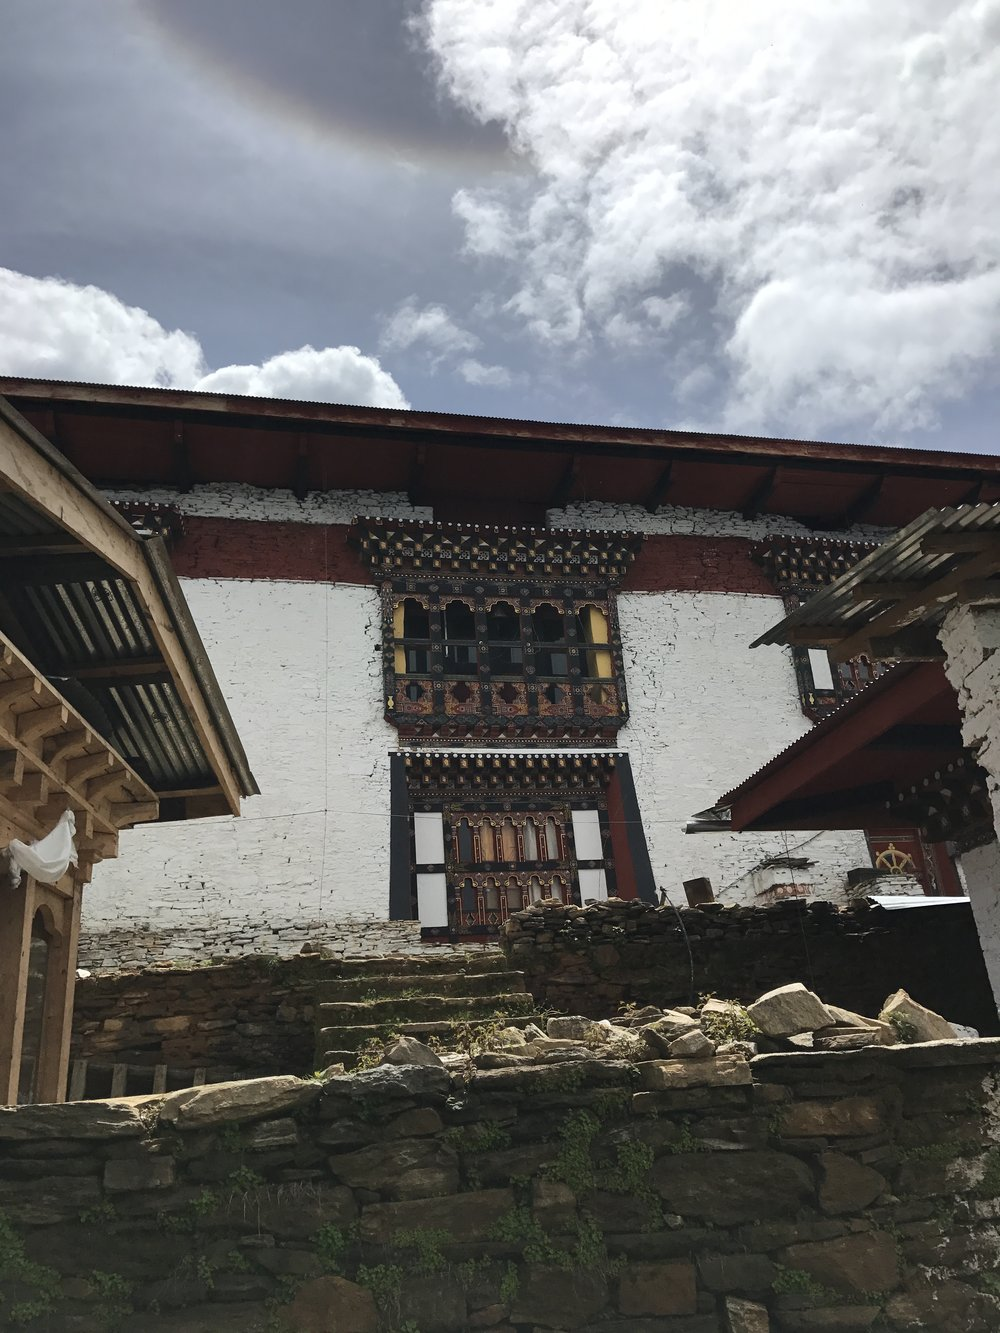 A smaller Dzong (fortress) on the way. Just impressive pieces of medival architecture.